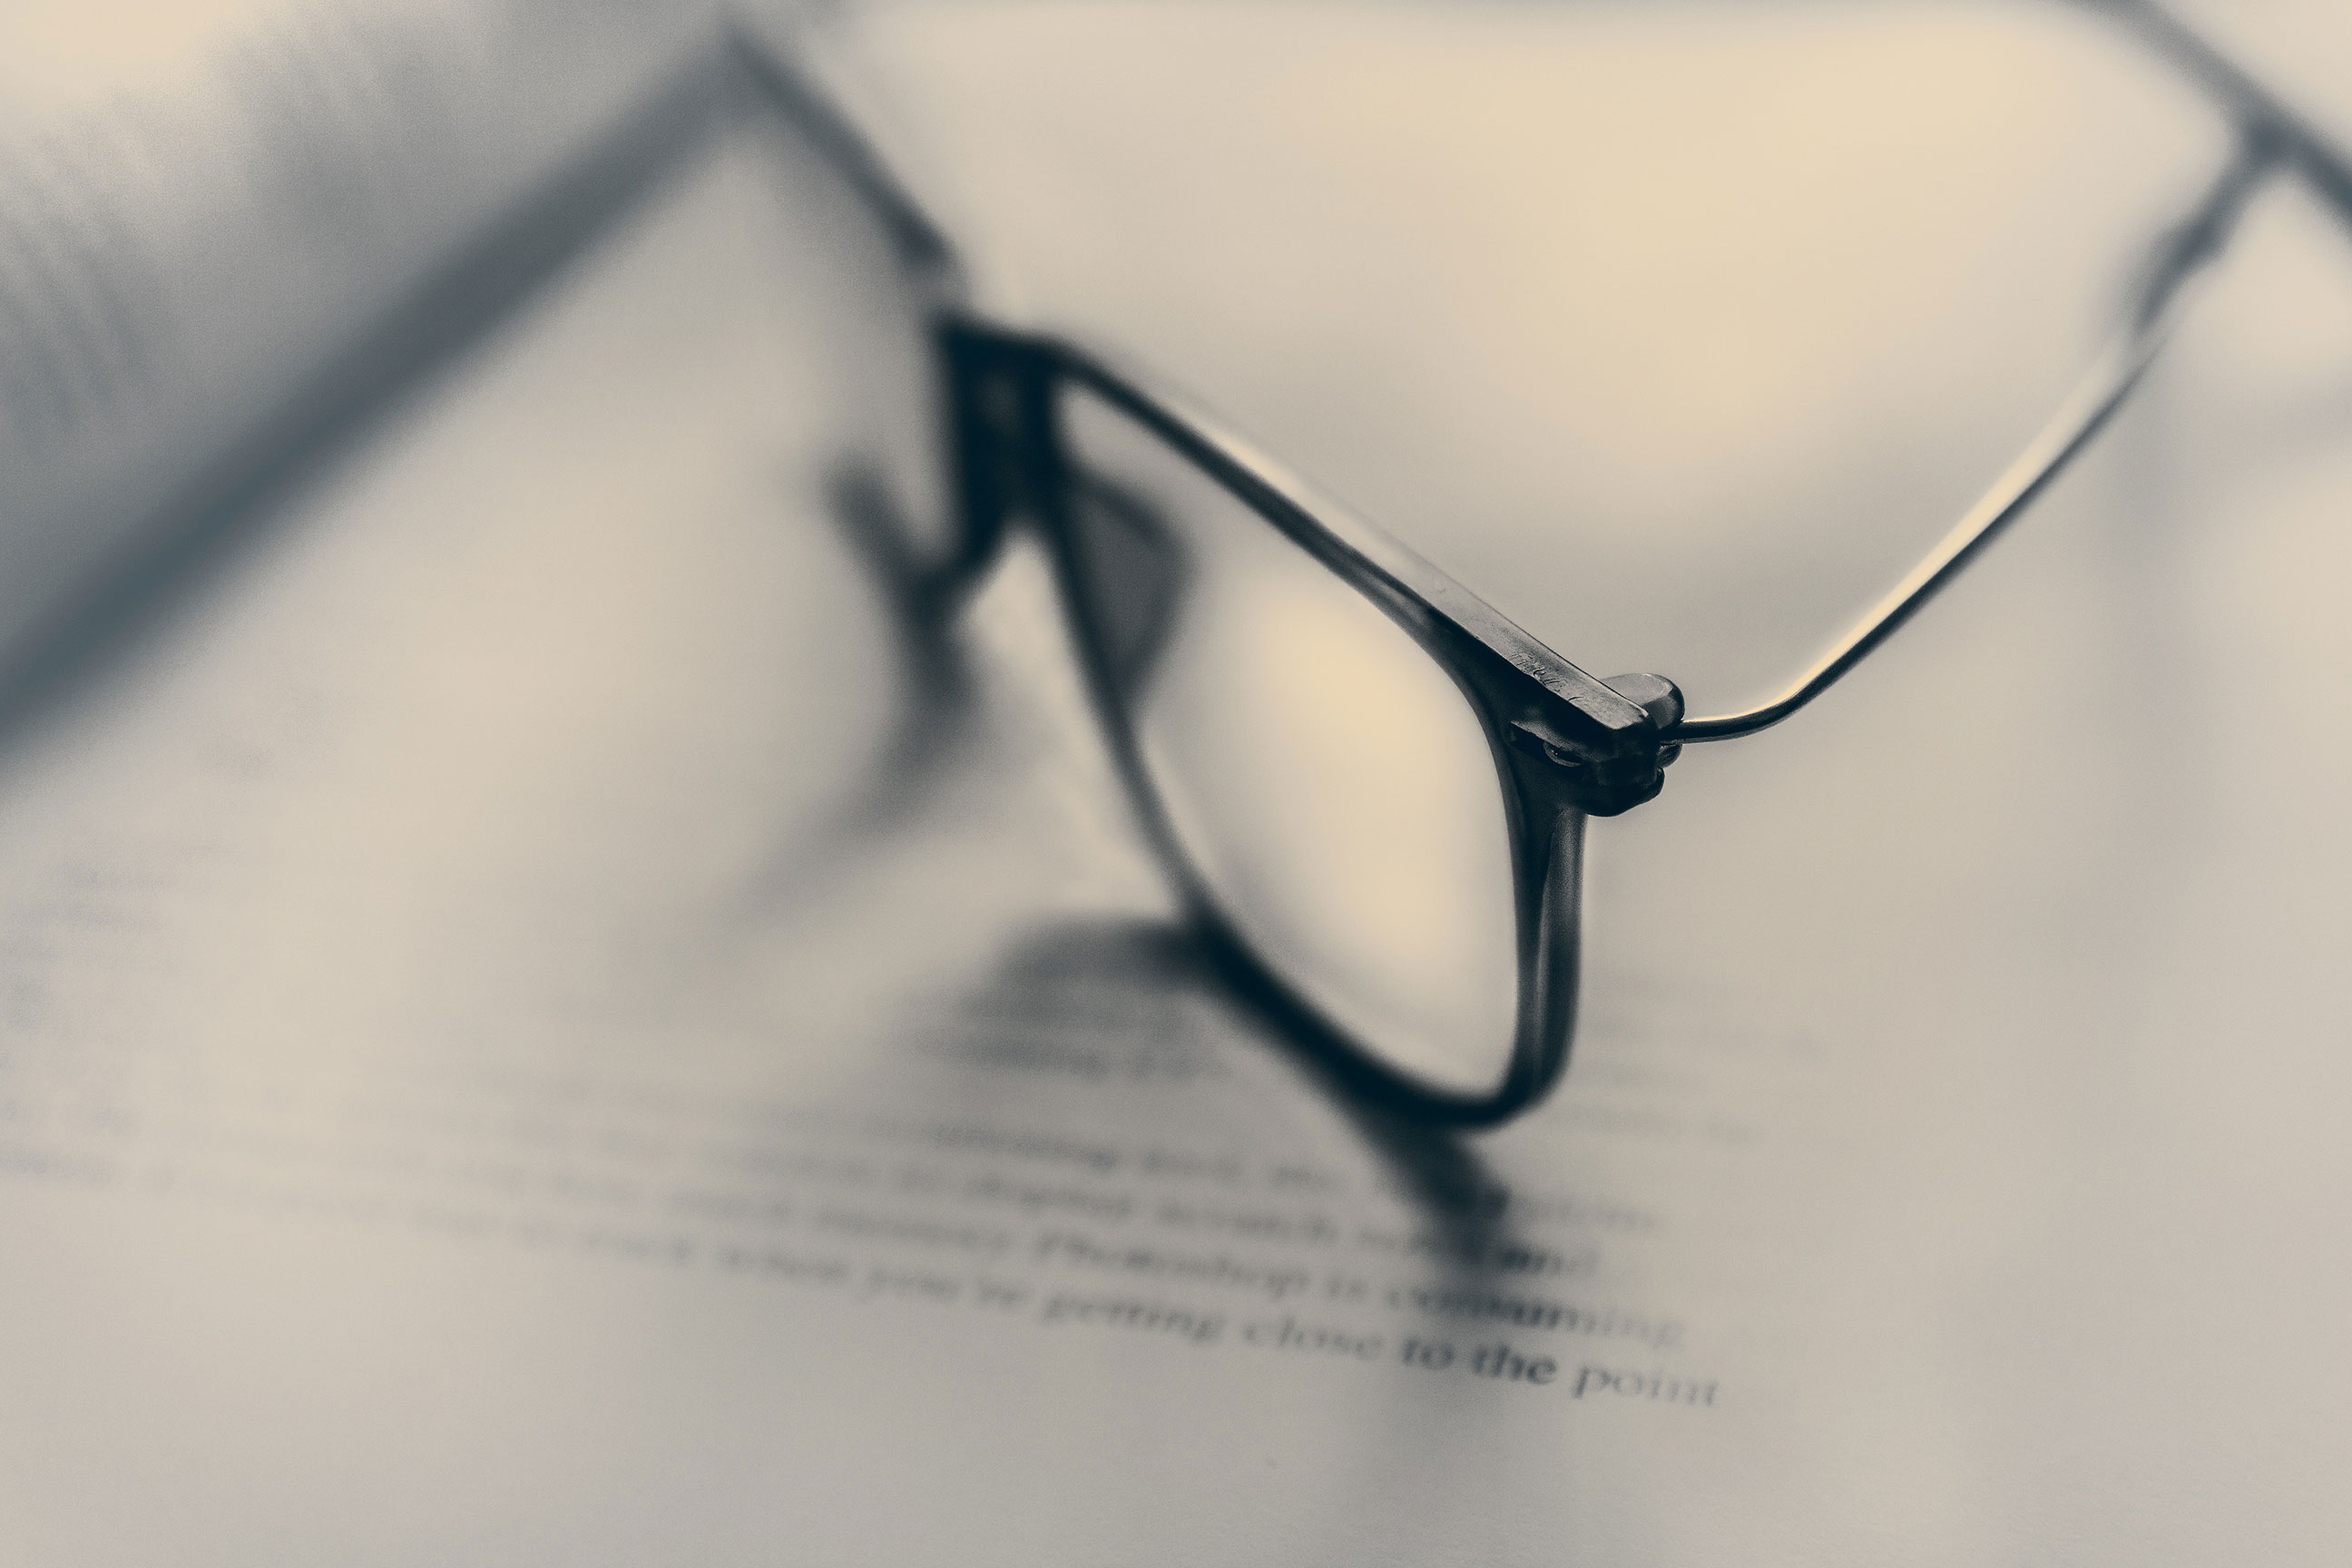 Glasses on book